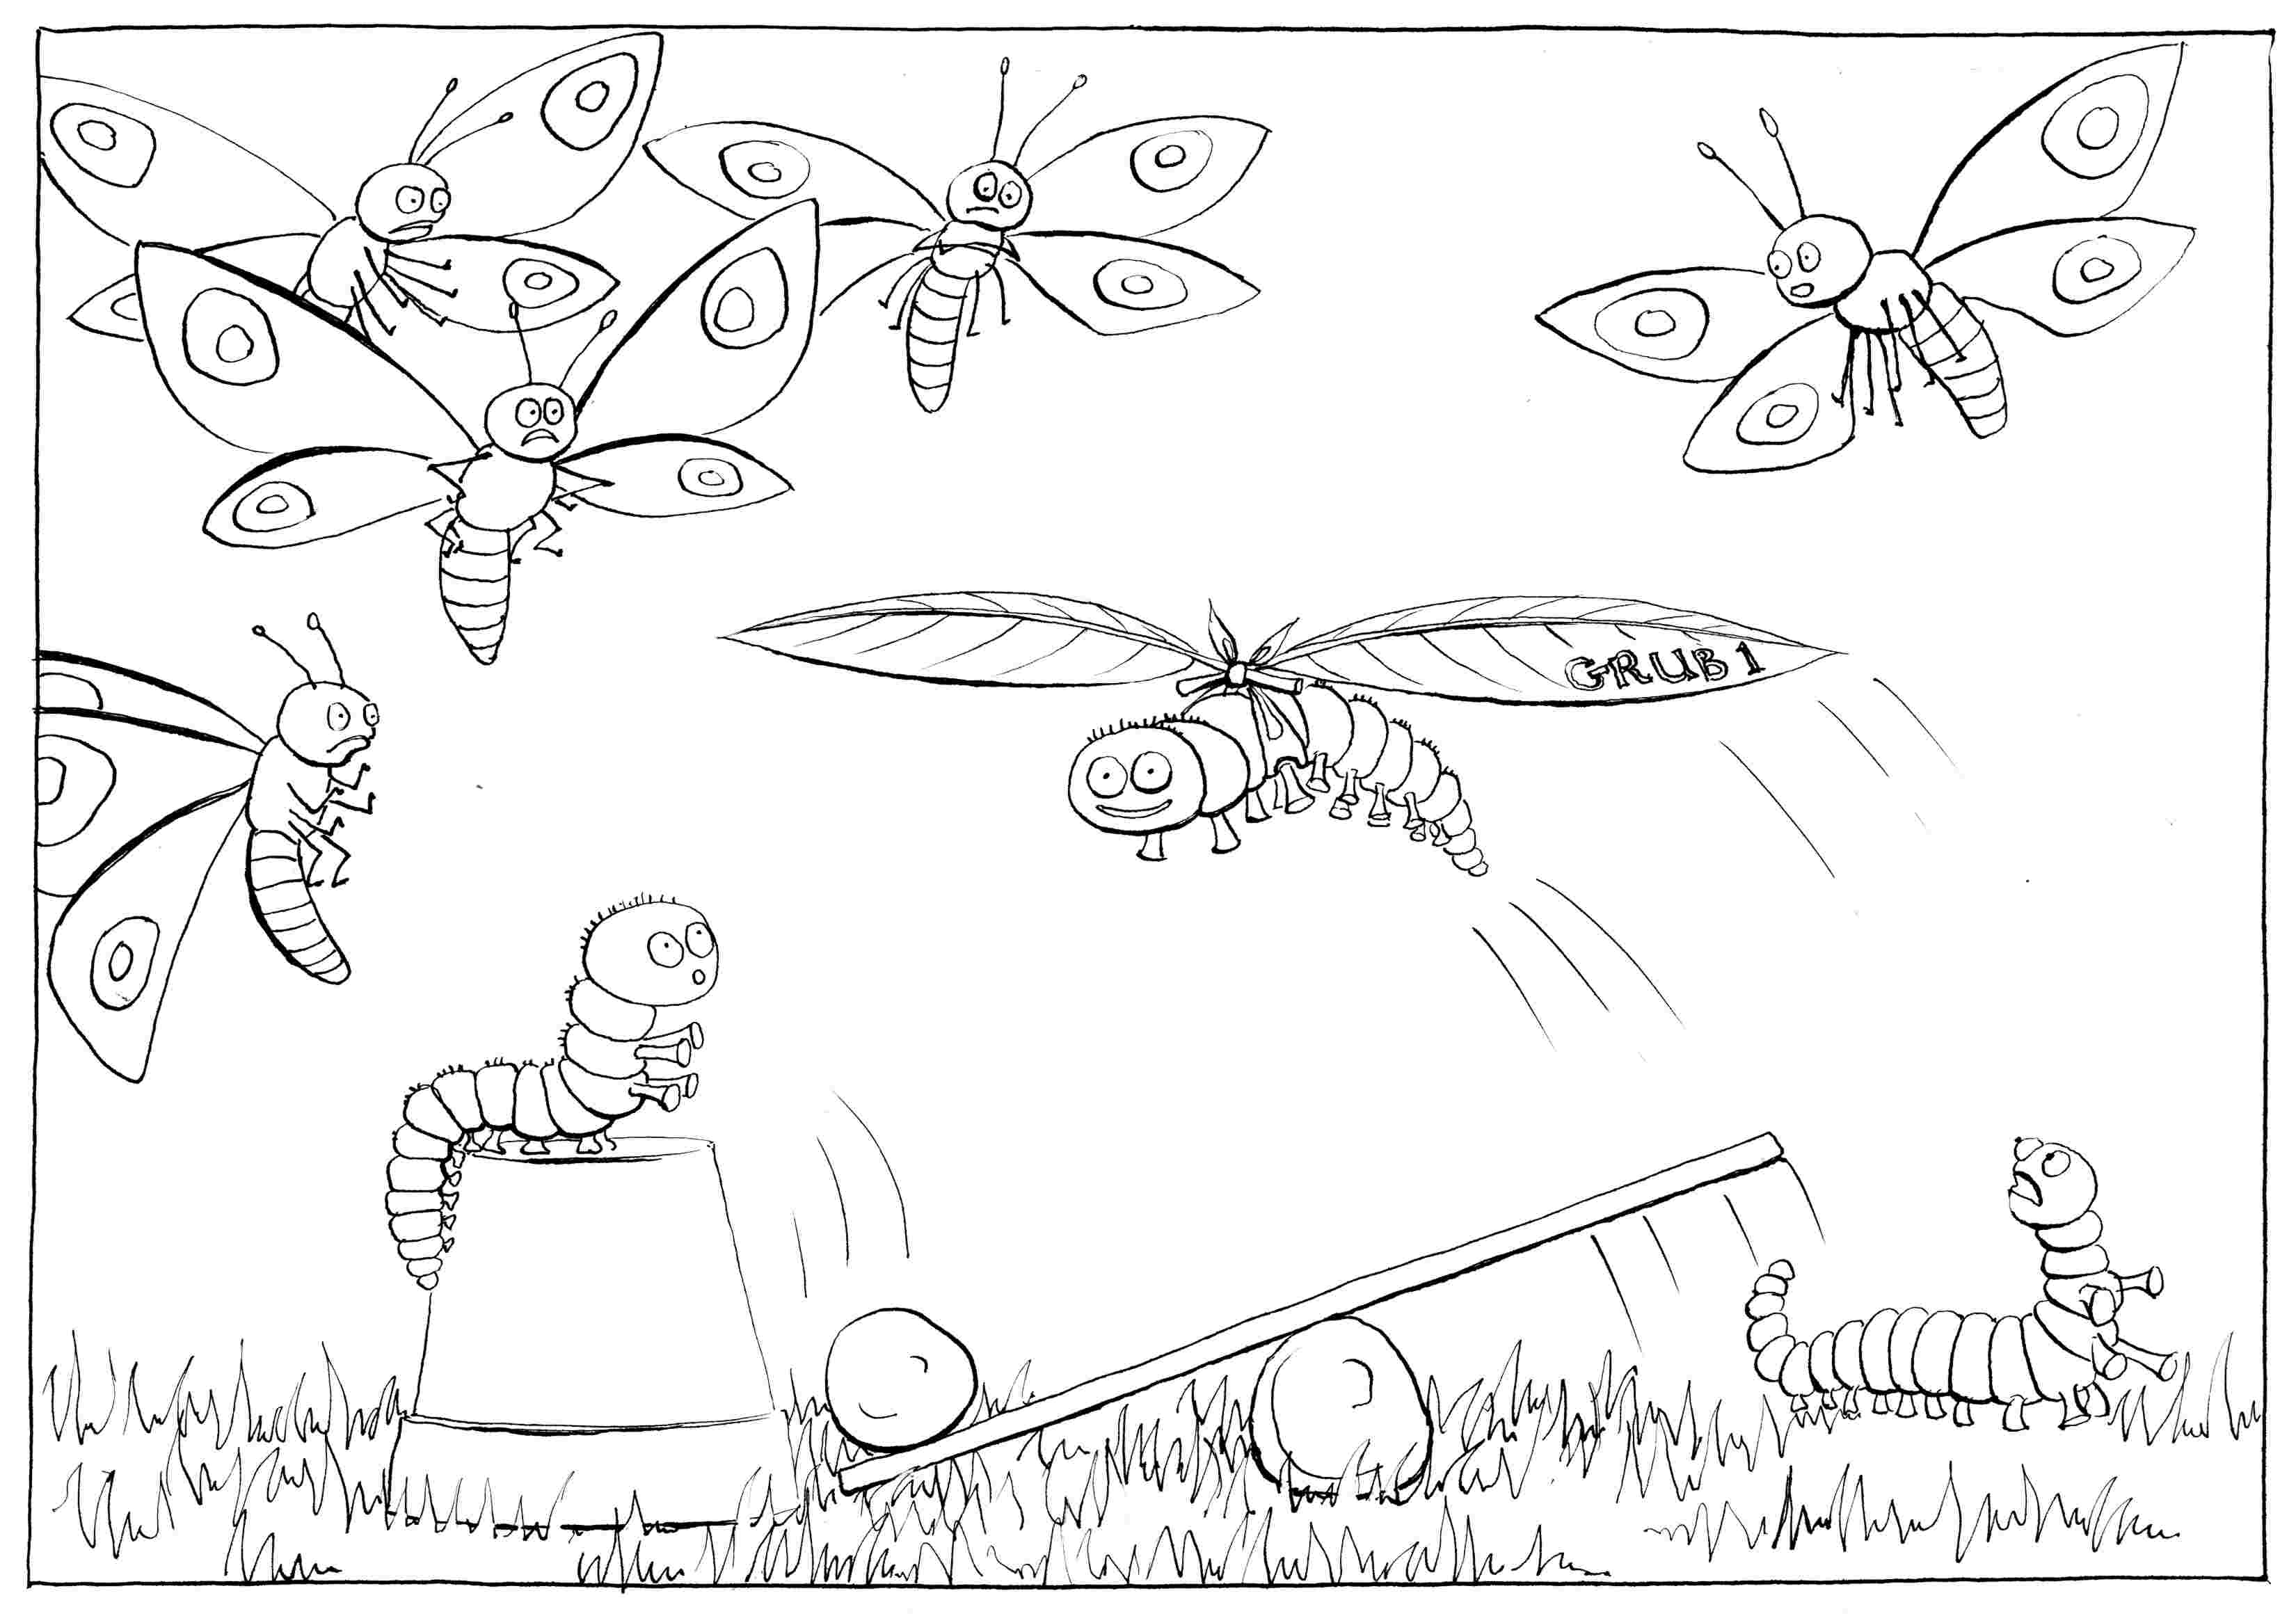 Learning to Fly: part I - colouring-in drawing - to download, right click and save, print out and colour in!